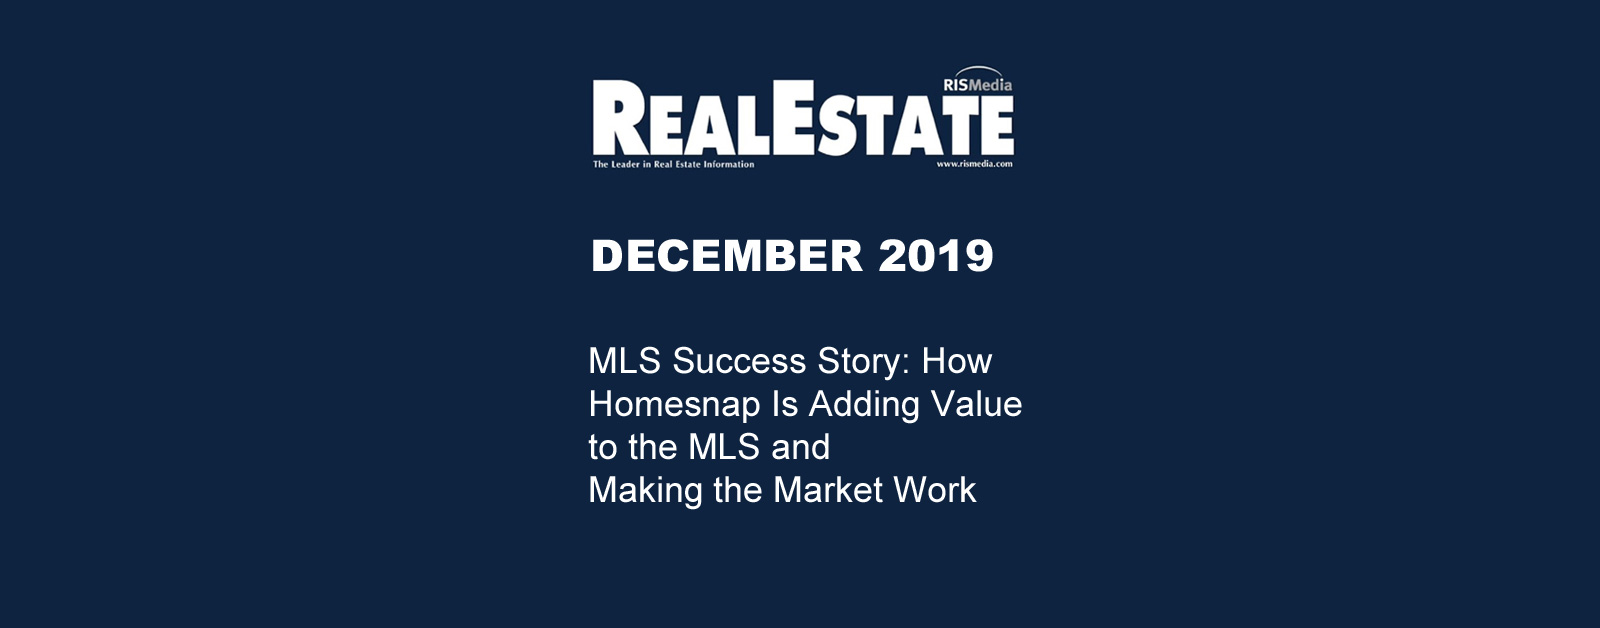 Real Estate Magazine December